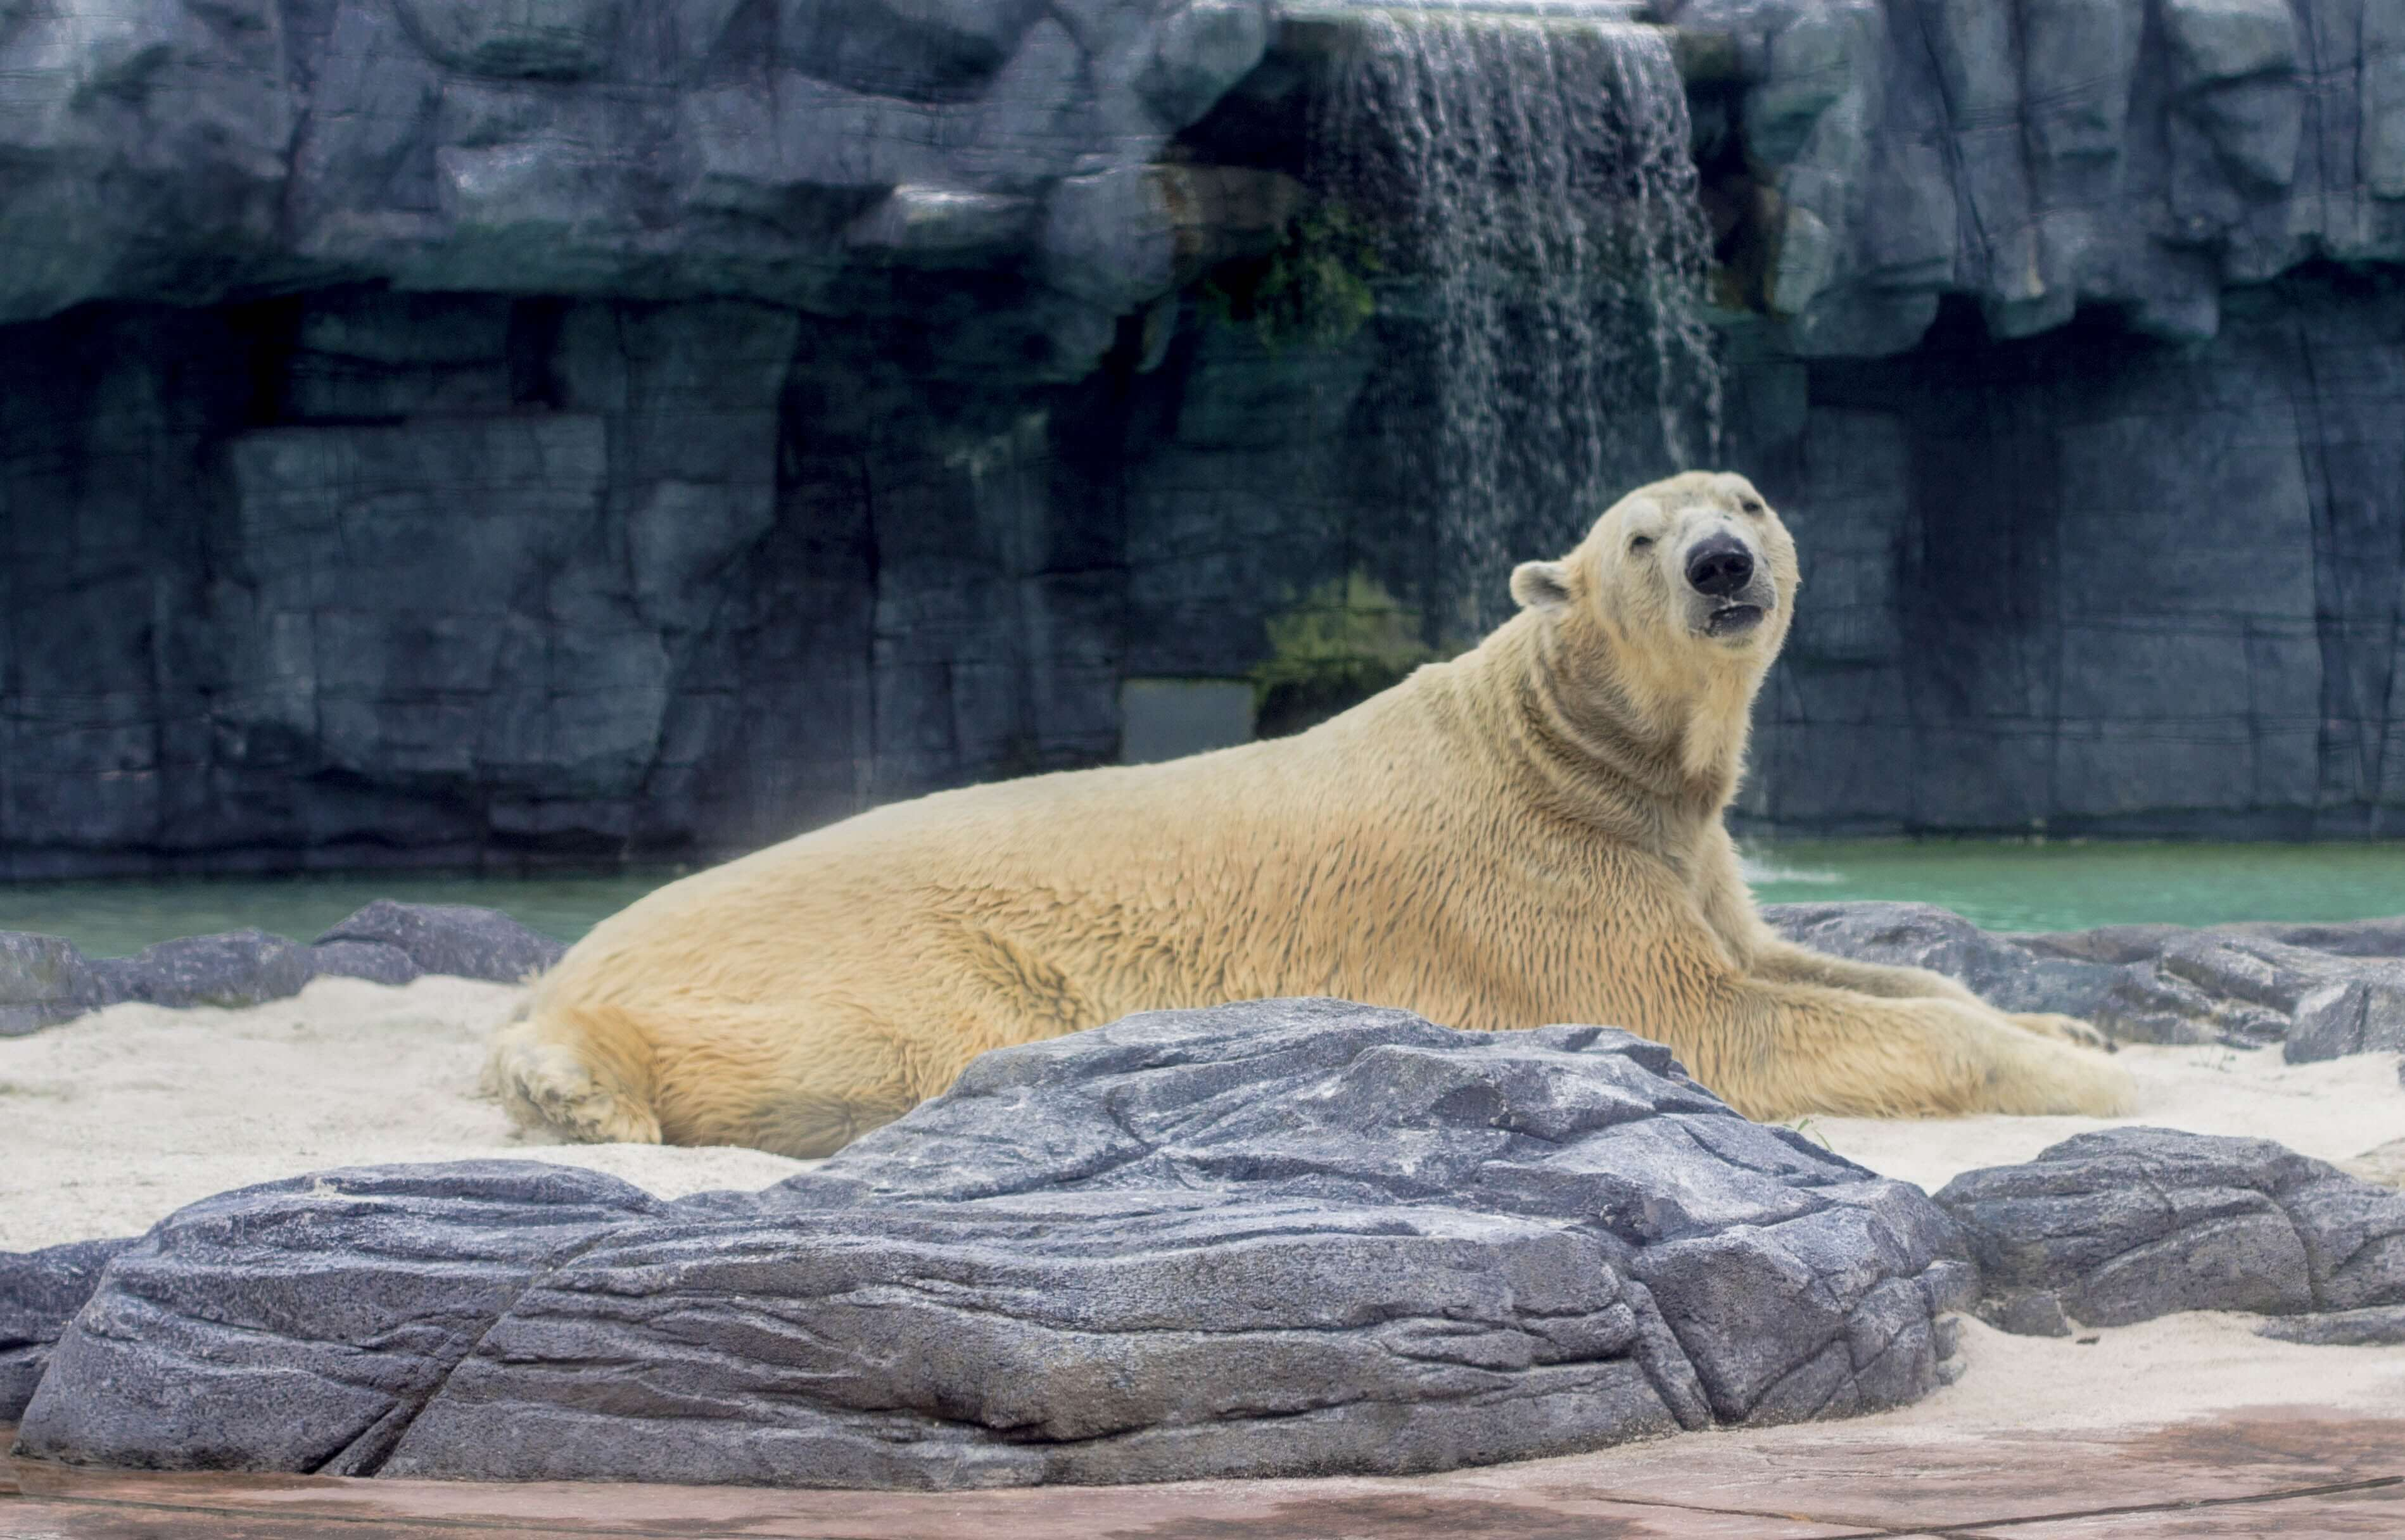 In captivity, the typical polar bear enclosure is estimated to be only a millionth the size of its species' natural environment.